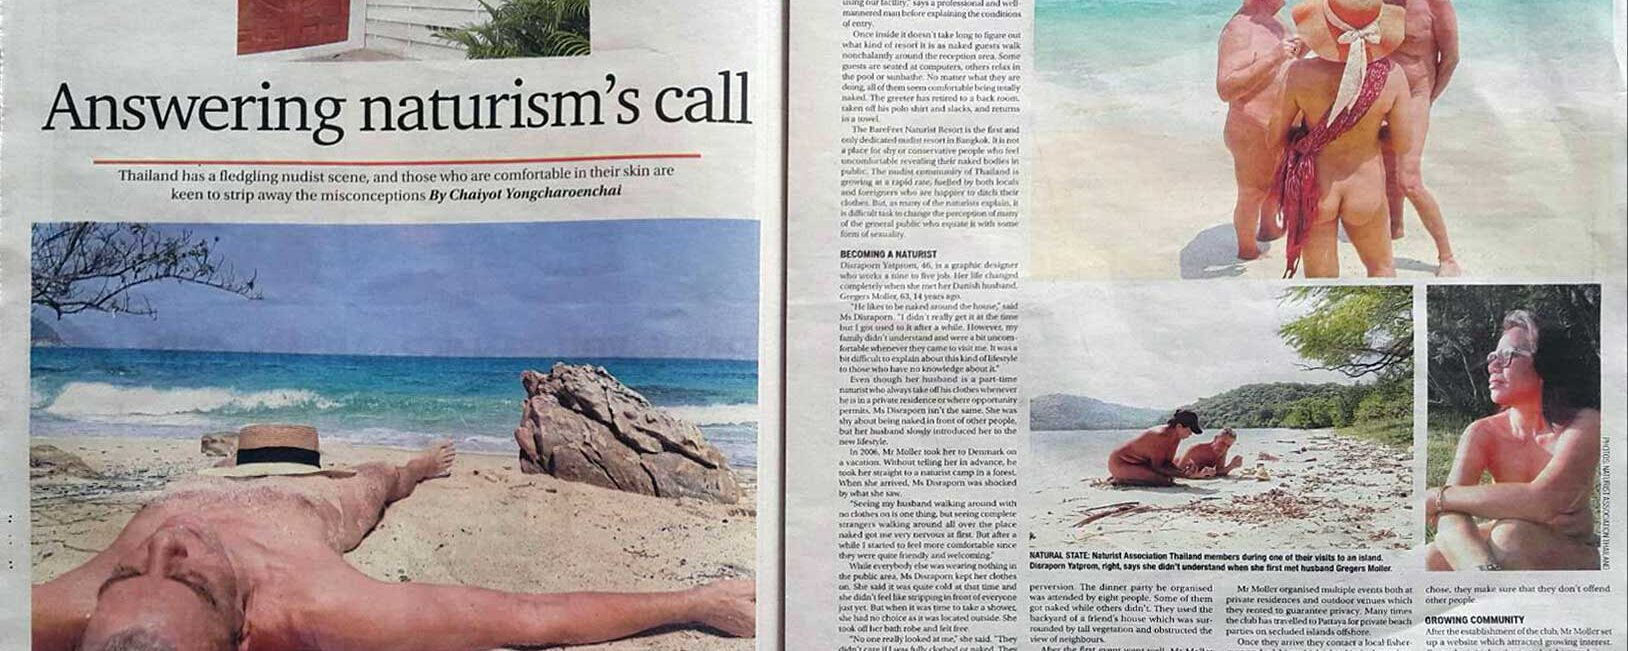 Bangkok Post prints special feature on naturism